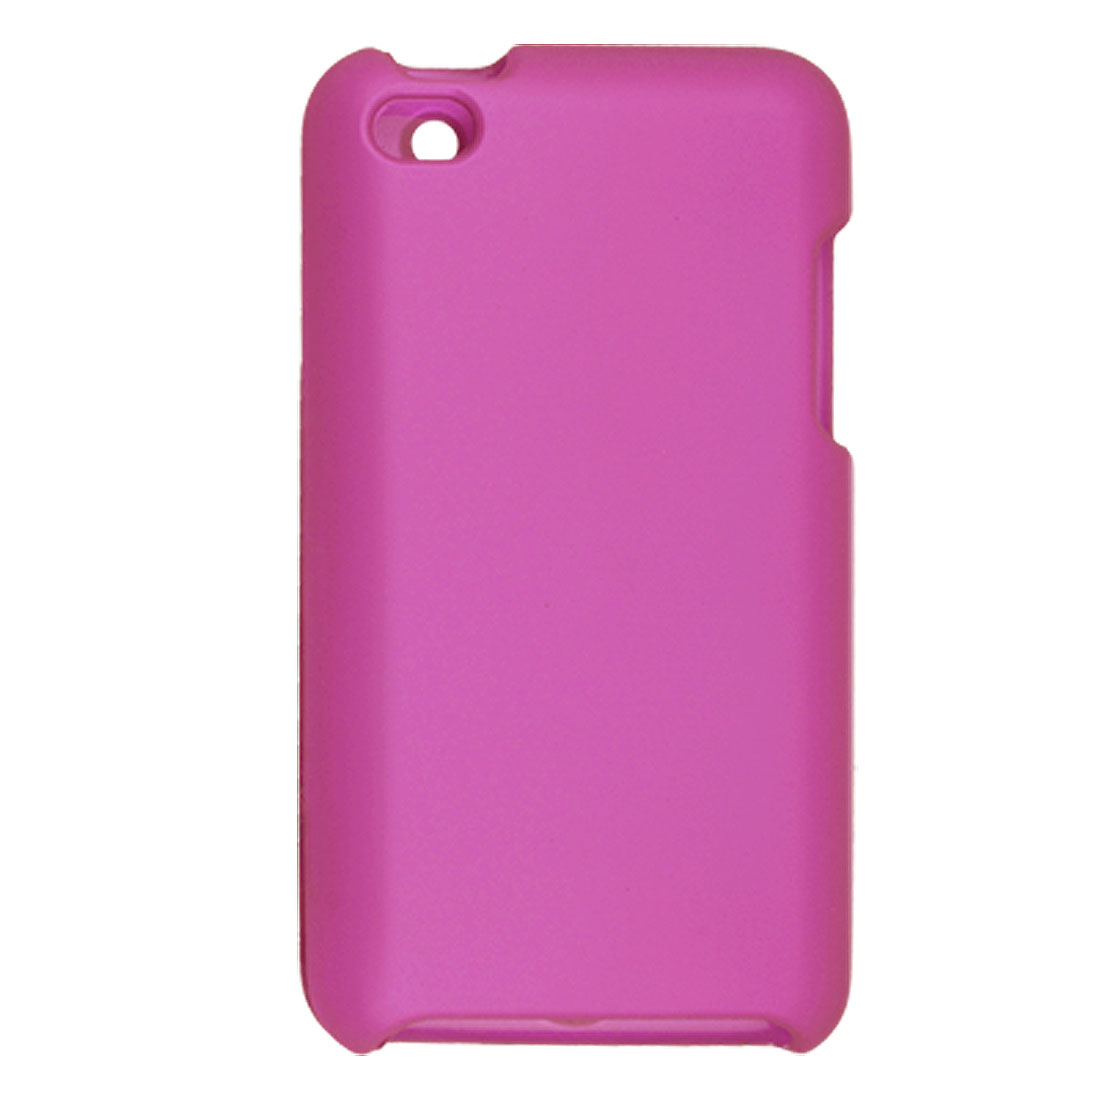 Rubberized Plastic Fuchsia Cover Case for iPod Touch 4G